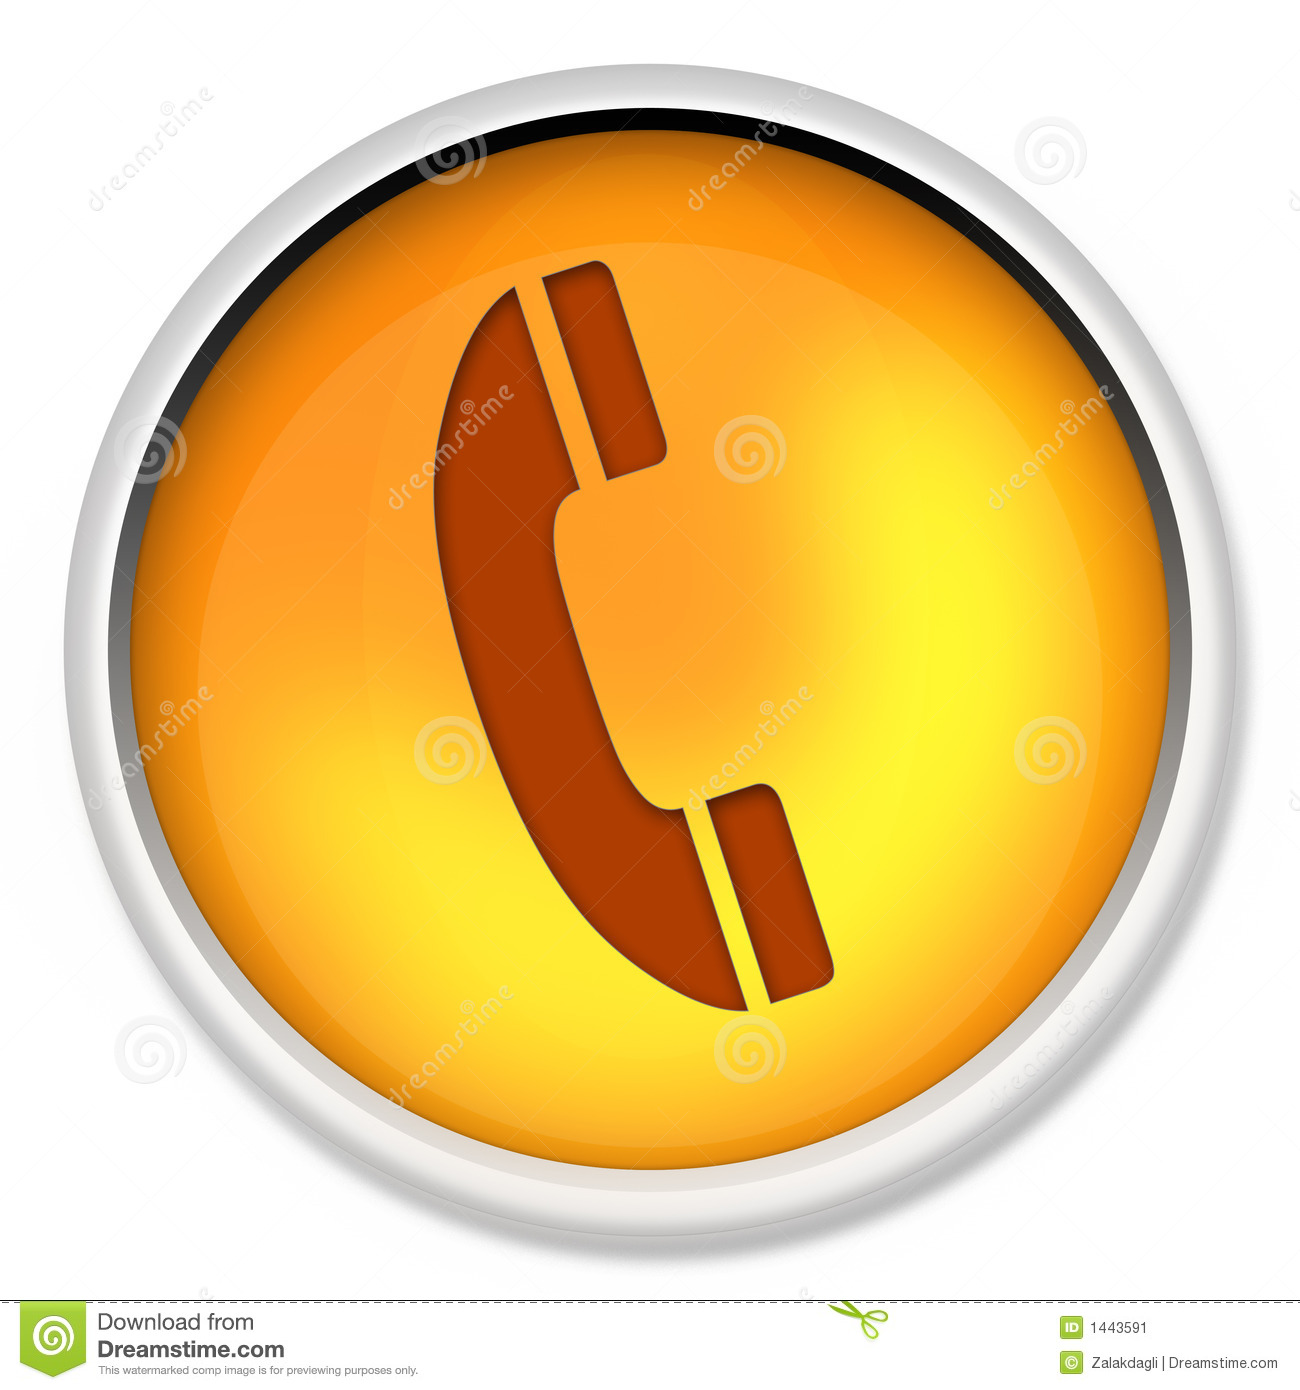 Icon, telephone, phone, cable, electronic, equipment, office, button, telecommunication